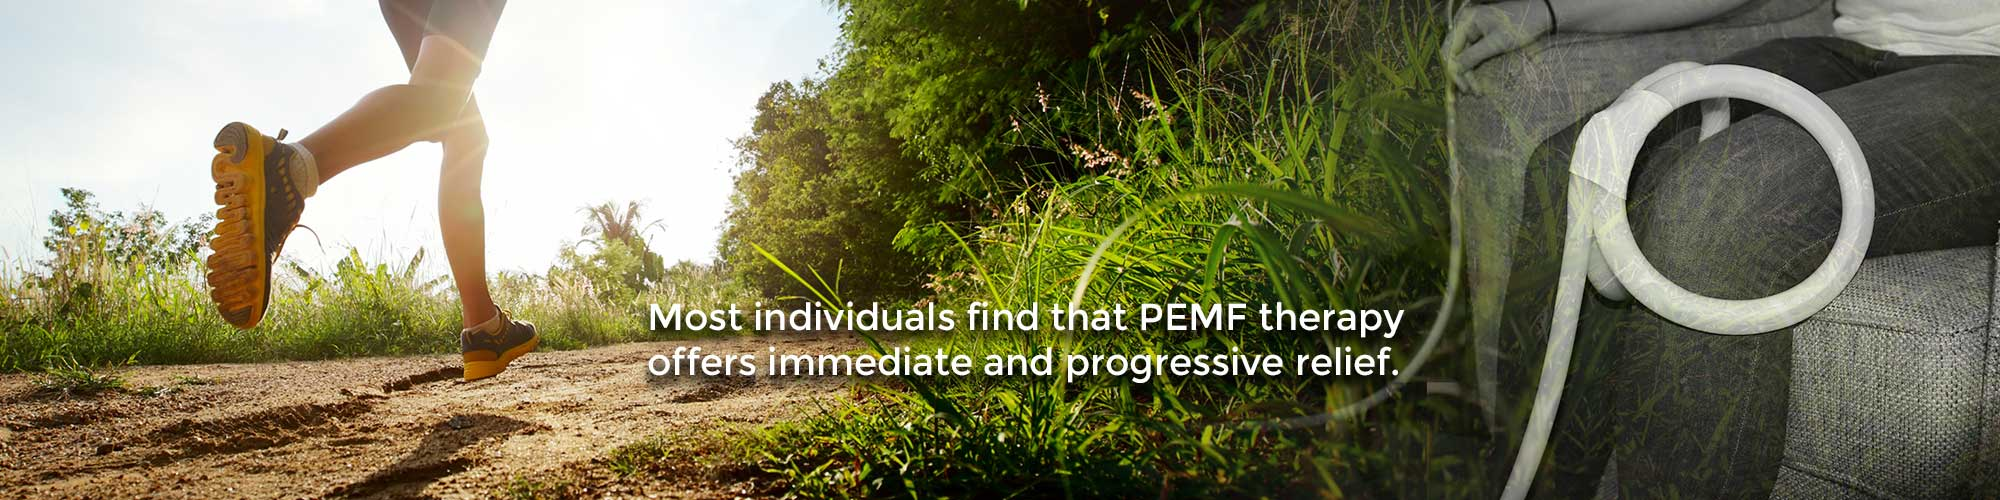 Most individuals find that PEMF therapy offers immediate and progressive relief.